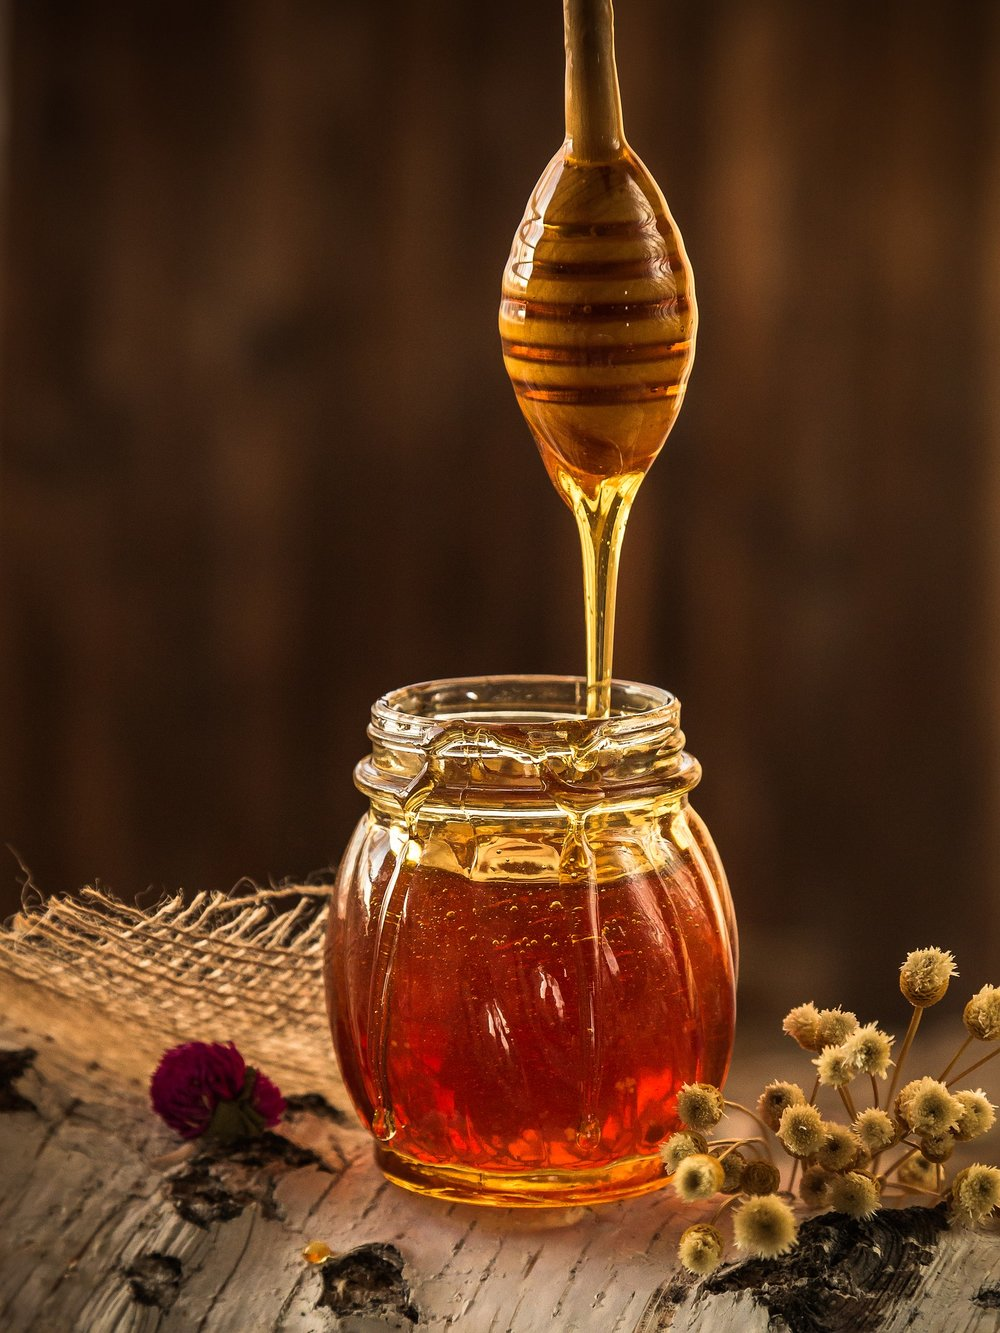 Tuckerbee's Local Honey can help with seasonal allergies and is a natural sweetener!